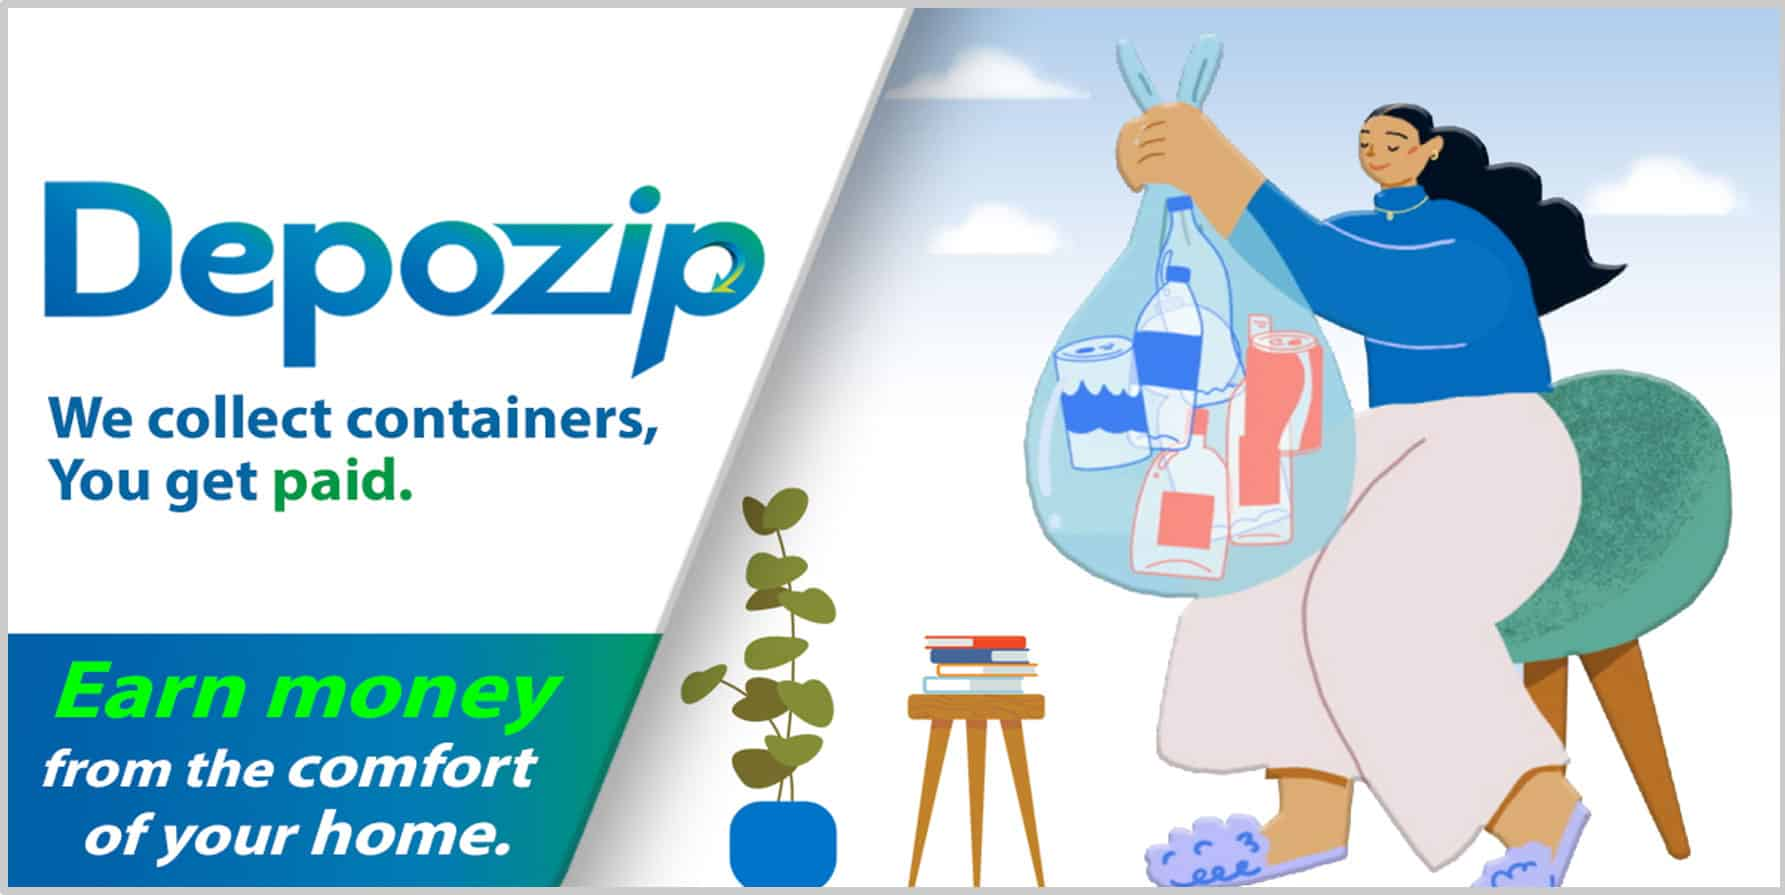 A Depozip program help you earn money from recycling containers